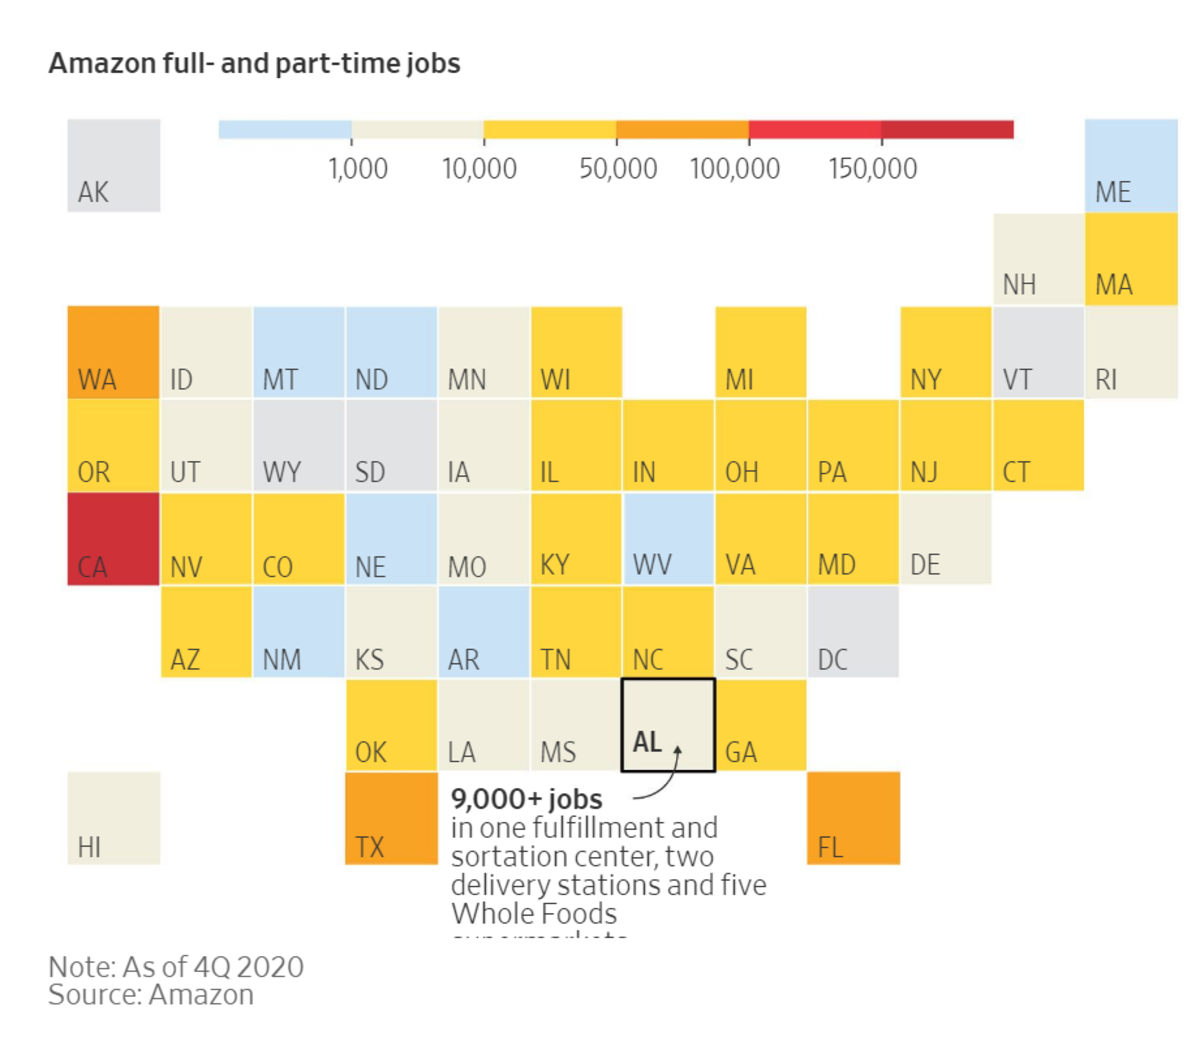 Amazon Full- and Part-Time Jobs